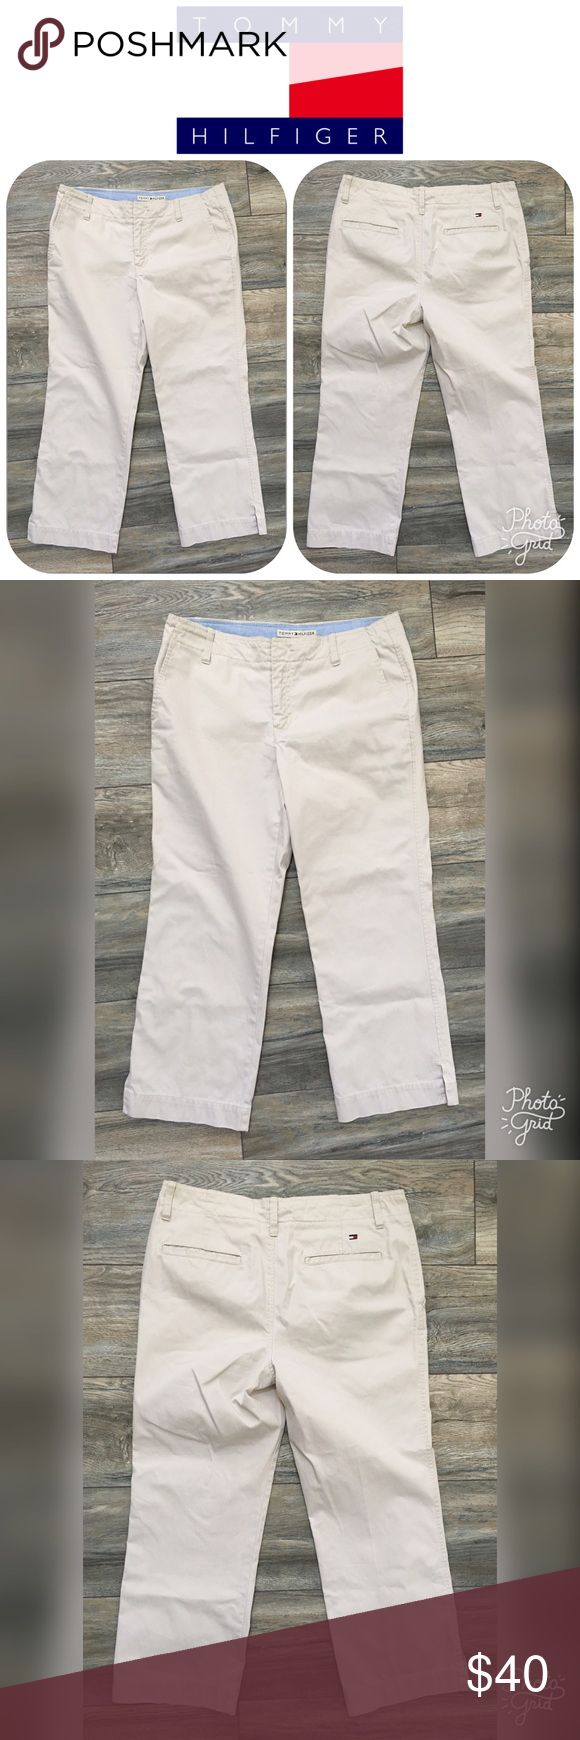 """NWOT TOMMY HILFIGER Dana Fit Khaki Capris Size 8 These are a pair of NEW WITHOUT TAGS TOMMY HILFIGER Dana Fit Khaki Capris in a size 8.  The inseam is approximately 25"""" and rise 10"""".  These Capris are super *CUTE* and originally $119! Tommy Hilfiger Pants Capris"""